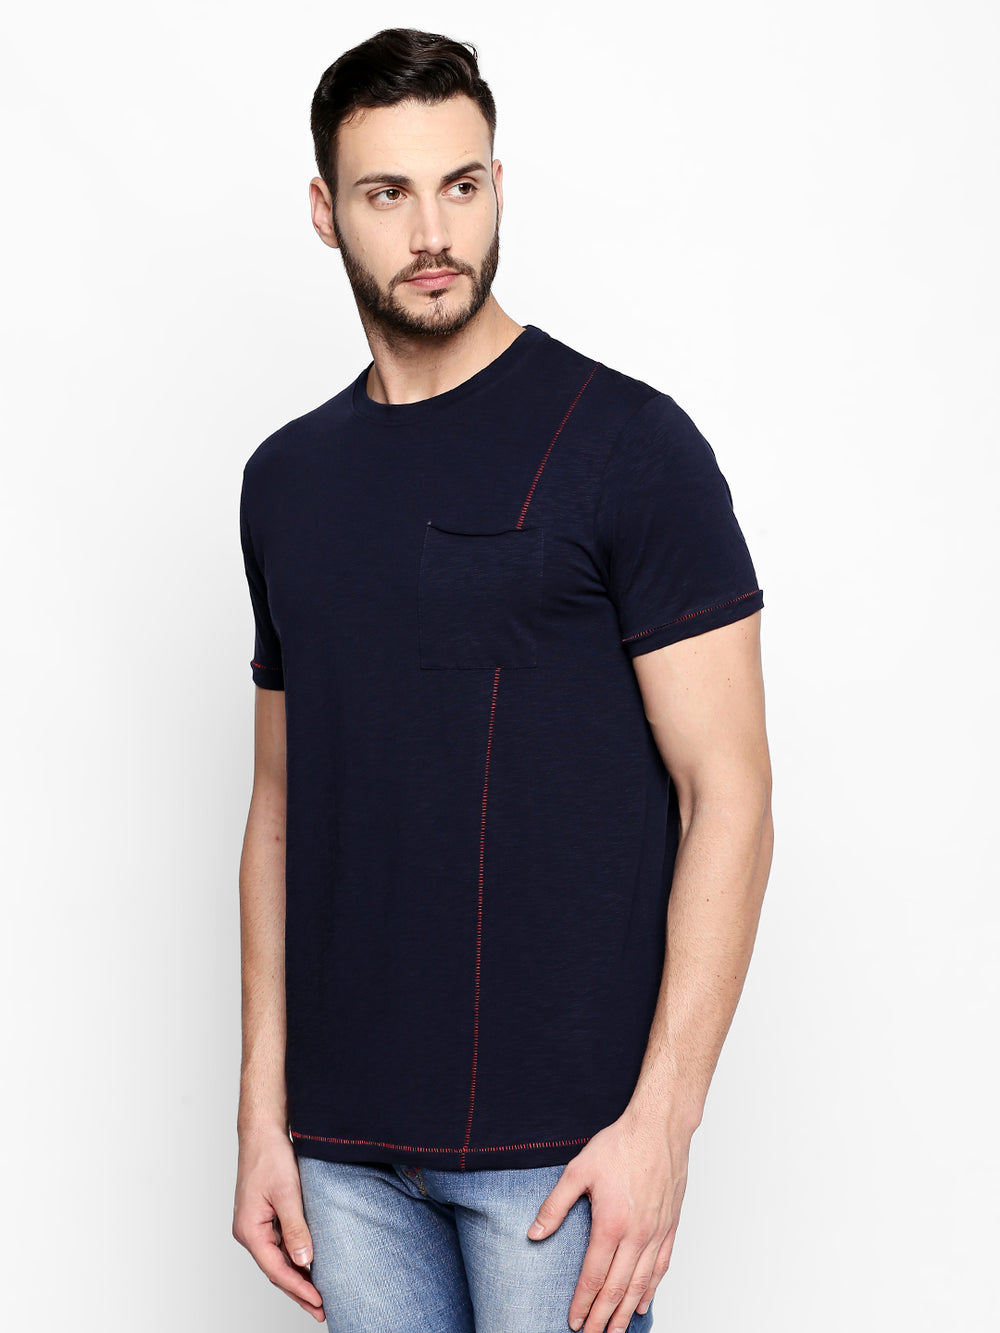 Disrupt Navy Cotton T-Shirt